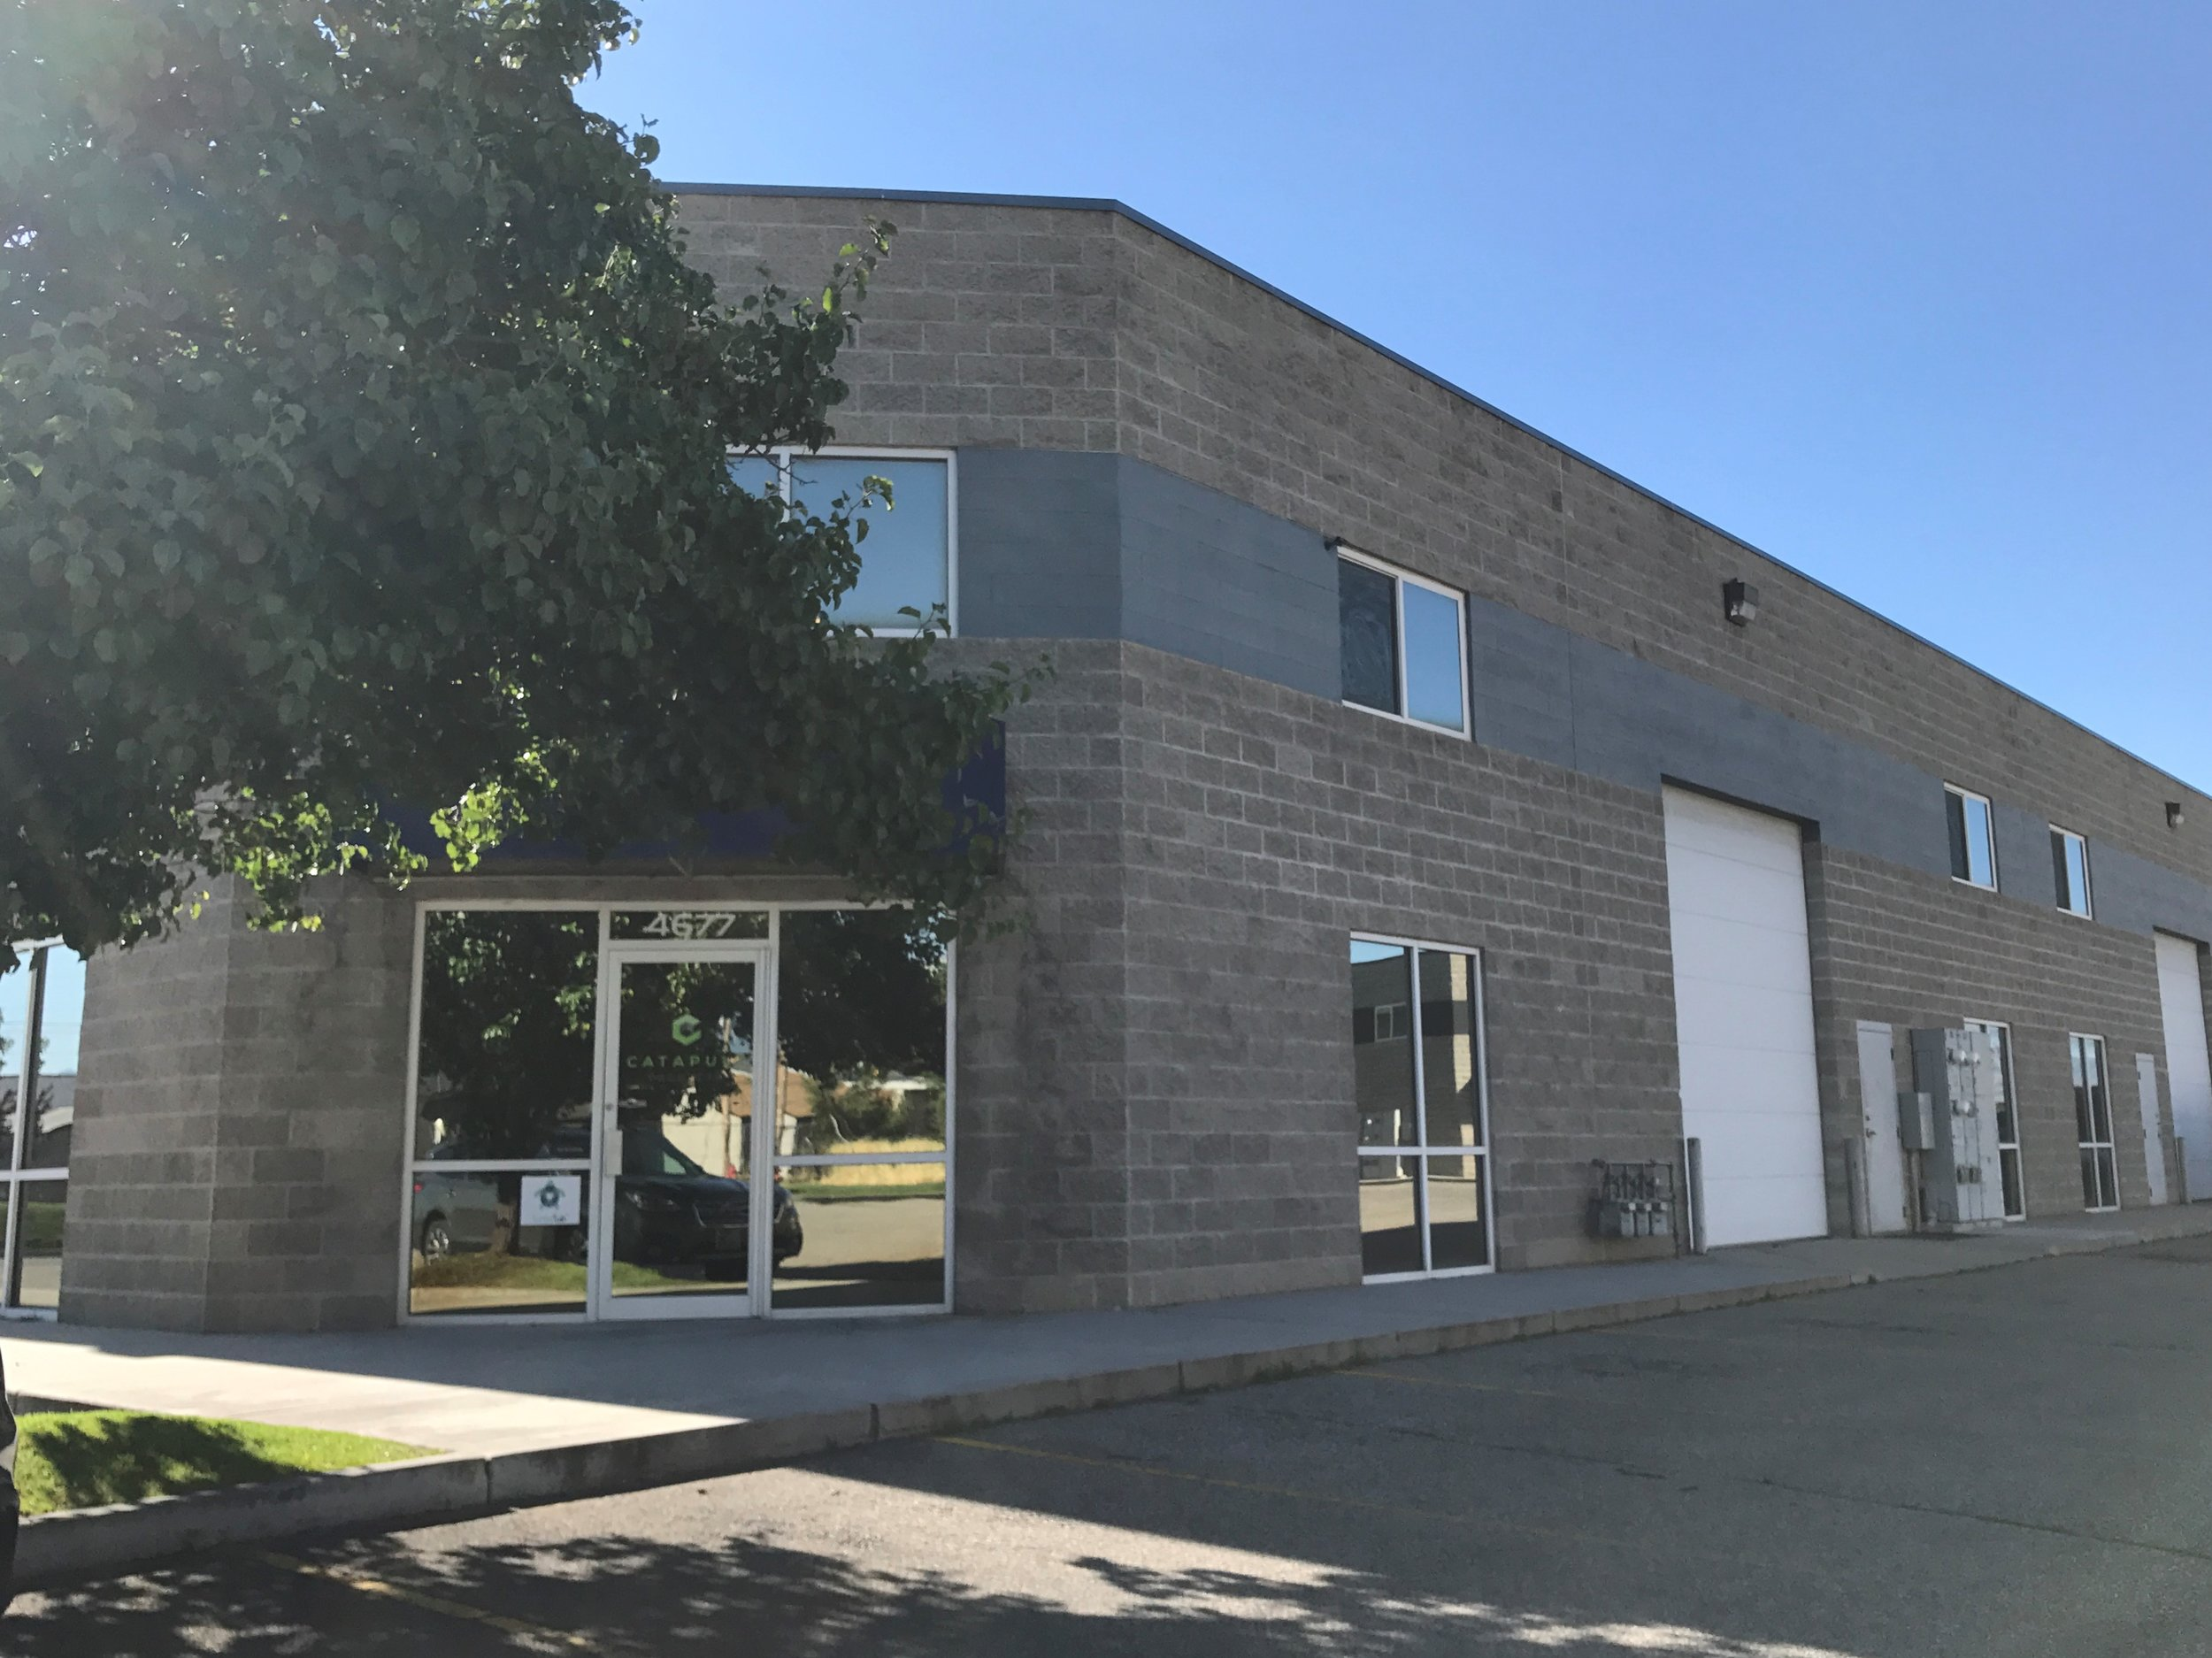 Catapult Products operates from its 12,000 sq ft manufacturing and distribution facility in Salt Lake City, UT.